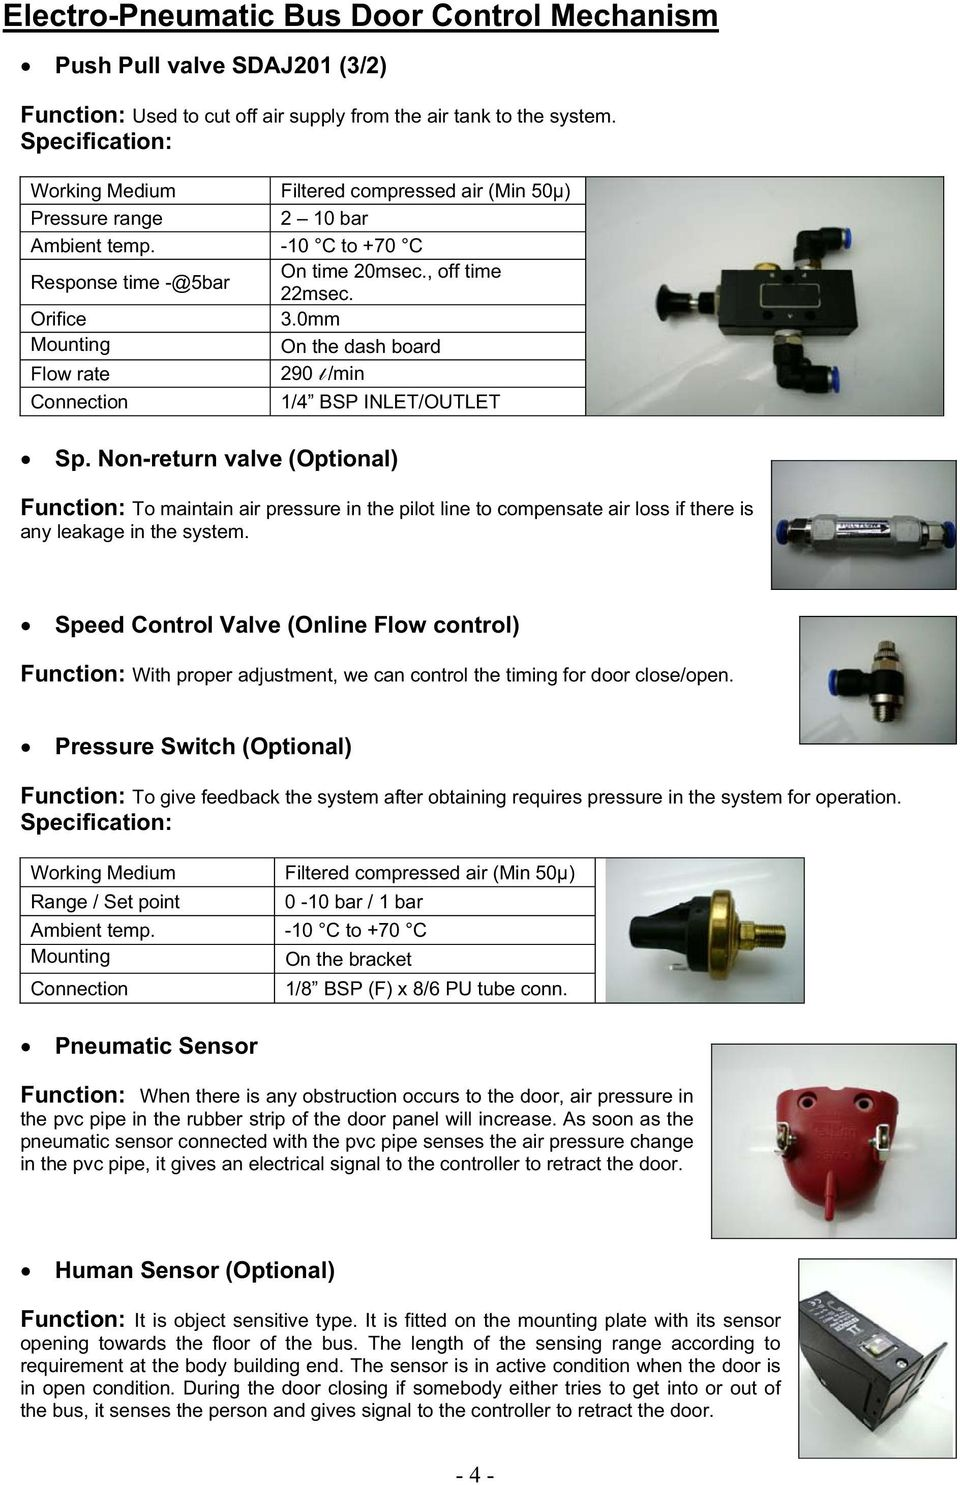 Speed Control Valve (Online Flow control) Function: With proper adjustment, we can control the timing for door close/open.